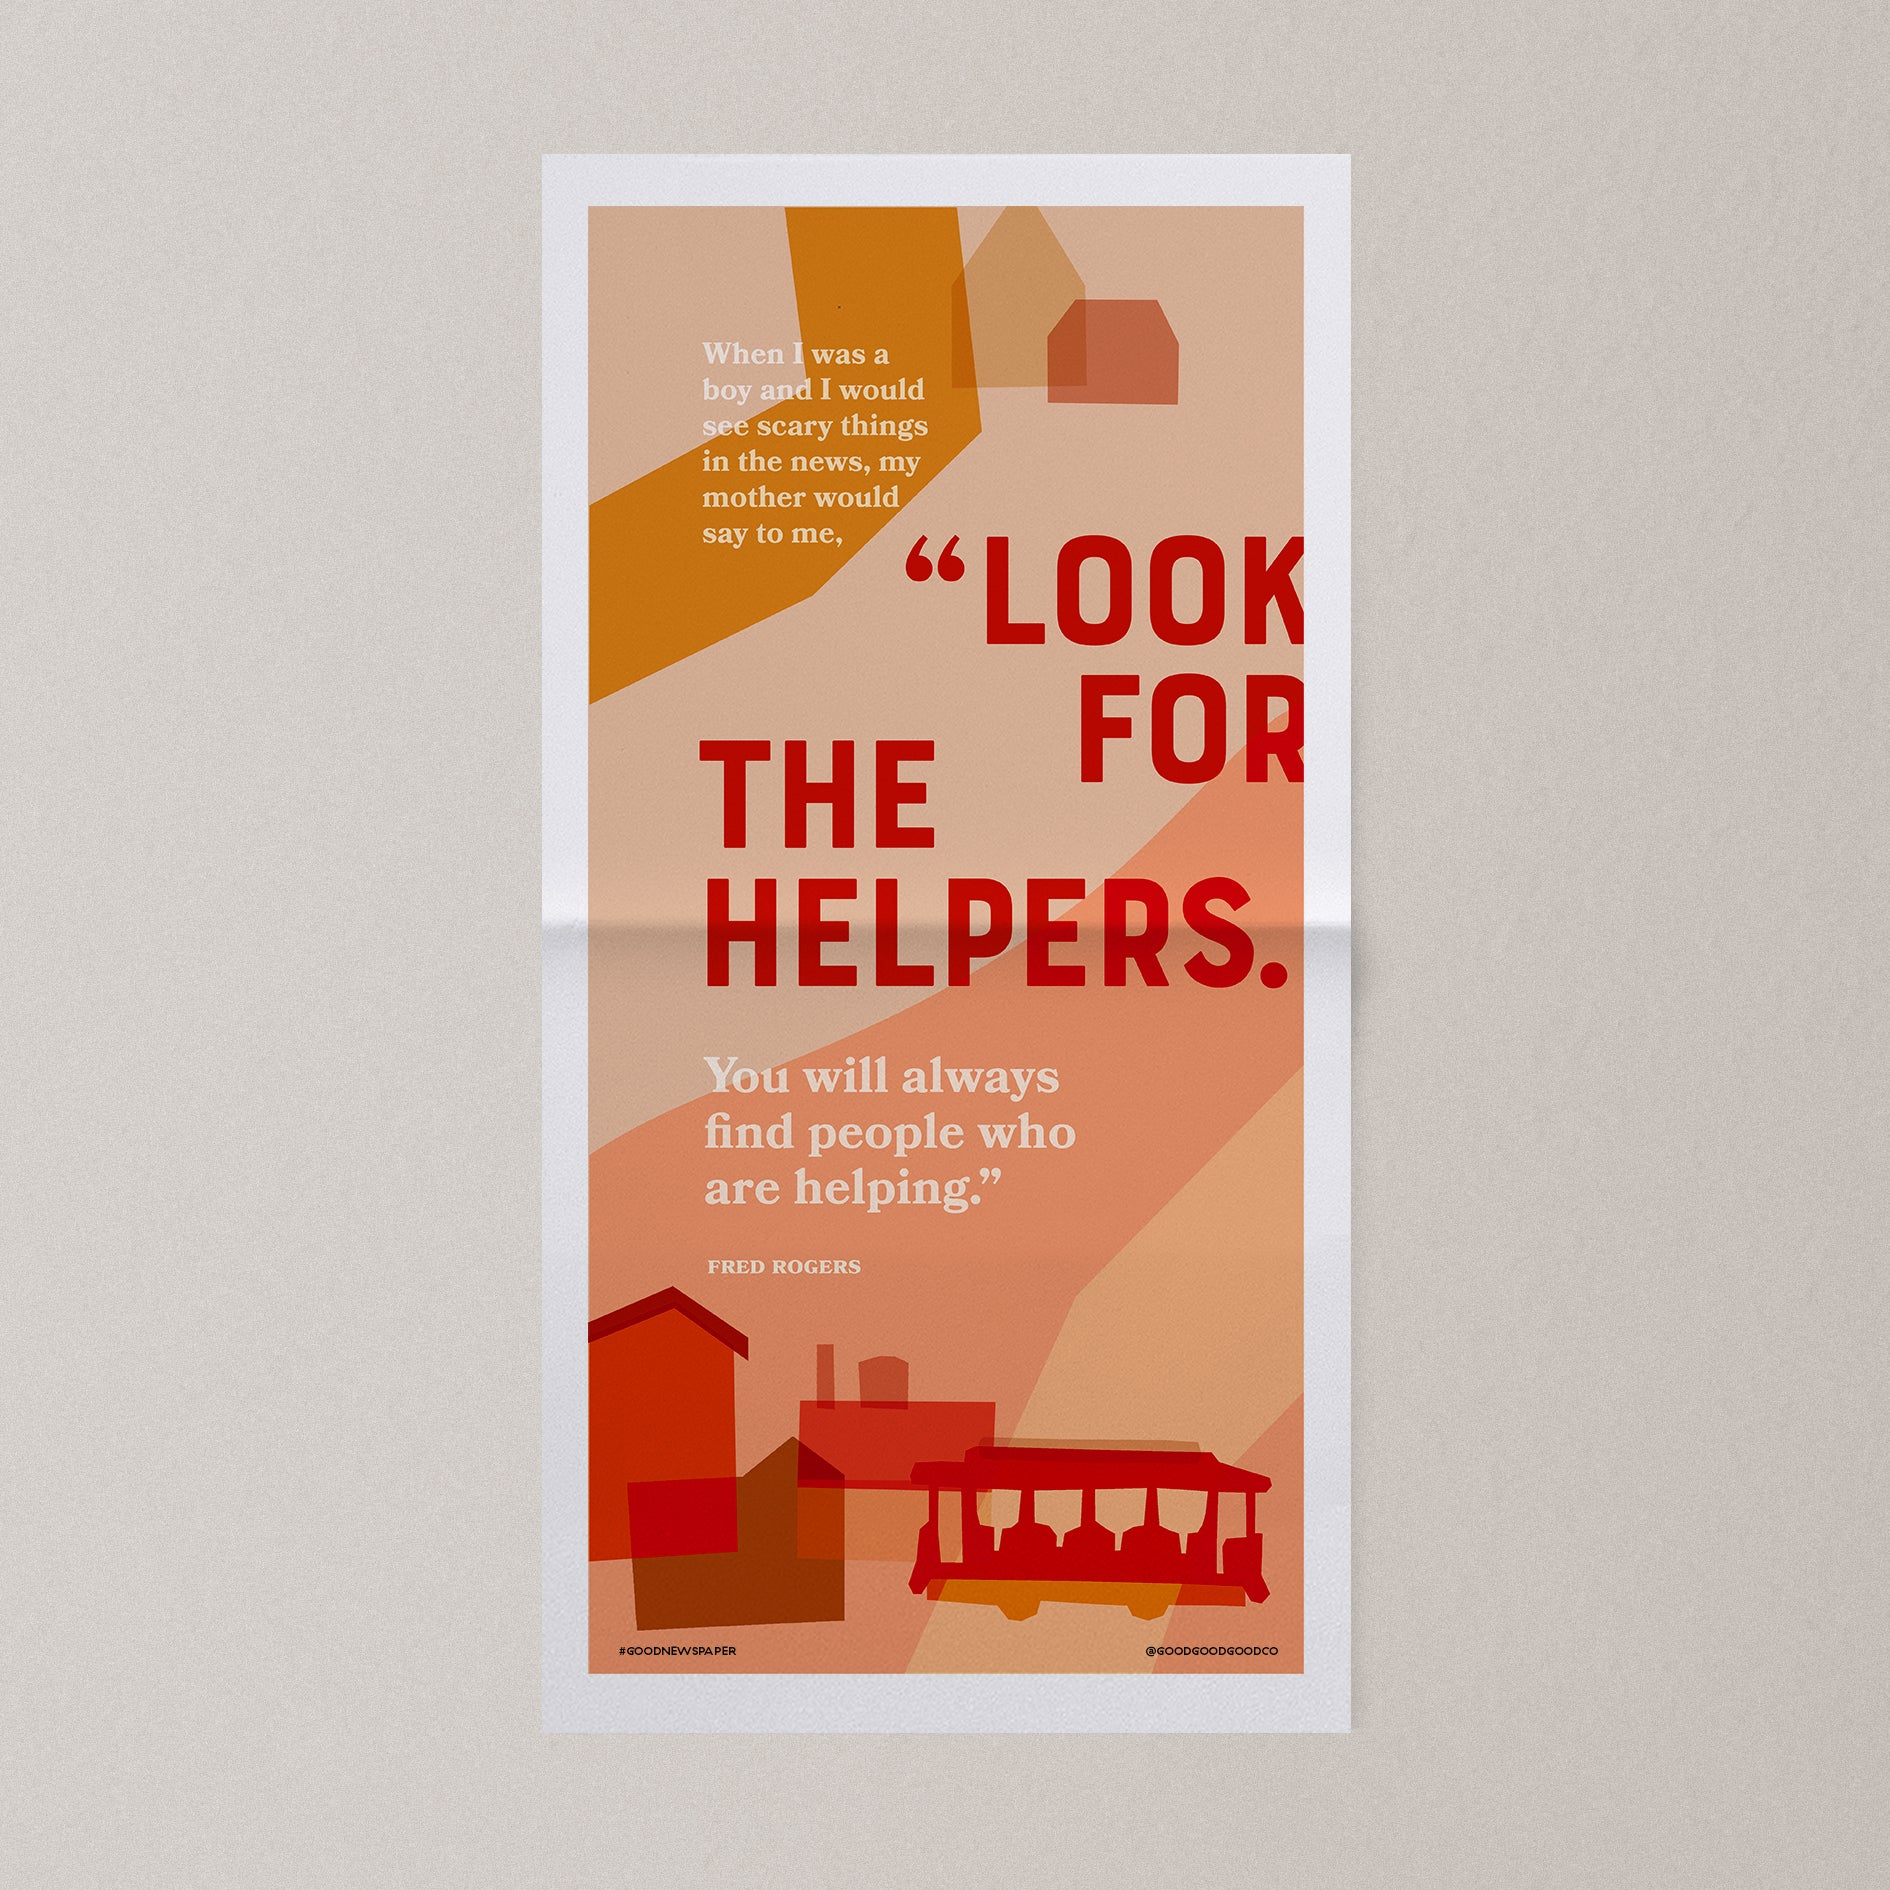 Goodnewspaper: The Helpers Edition